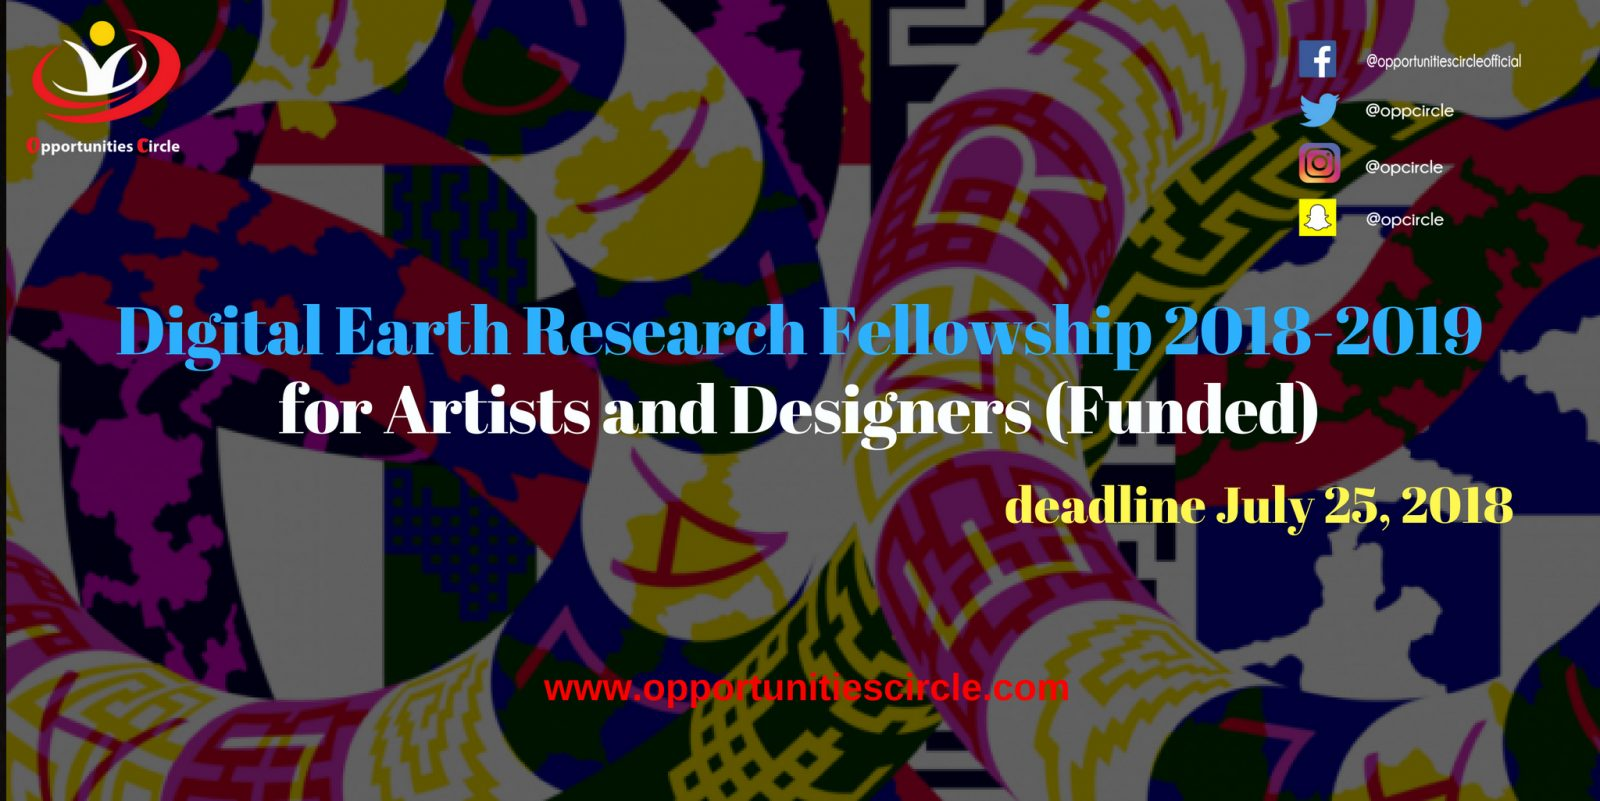 Digital Earth Research Fellowship 2018 2019 for Artists and Designers - Digital Earth Research Fellowship 2018-2019 for Artists and Designers (Funded)